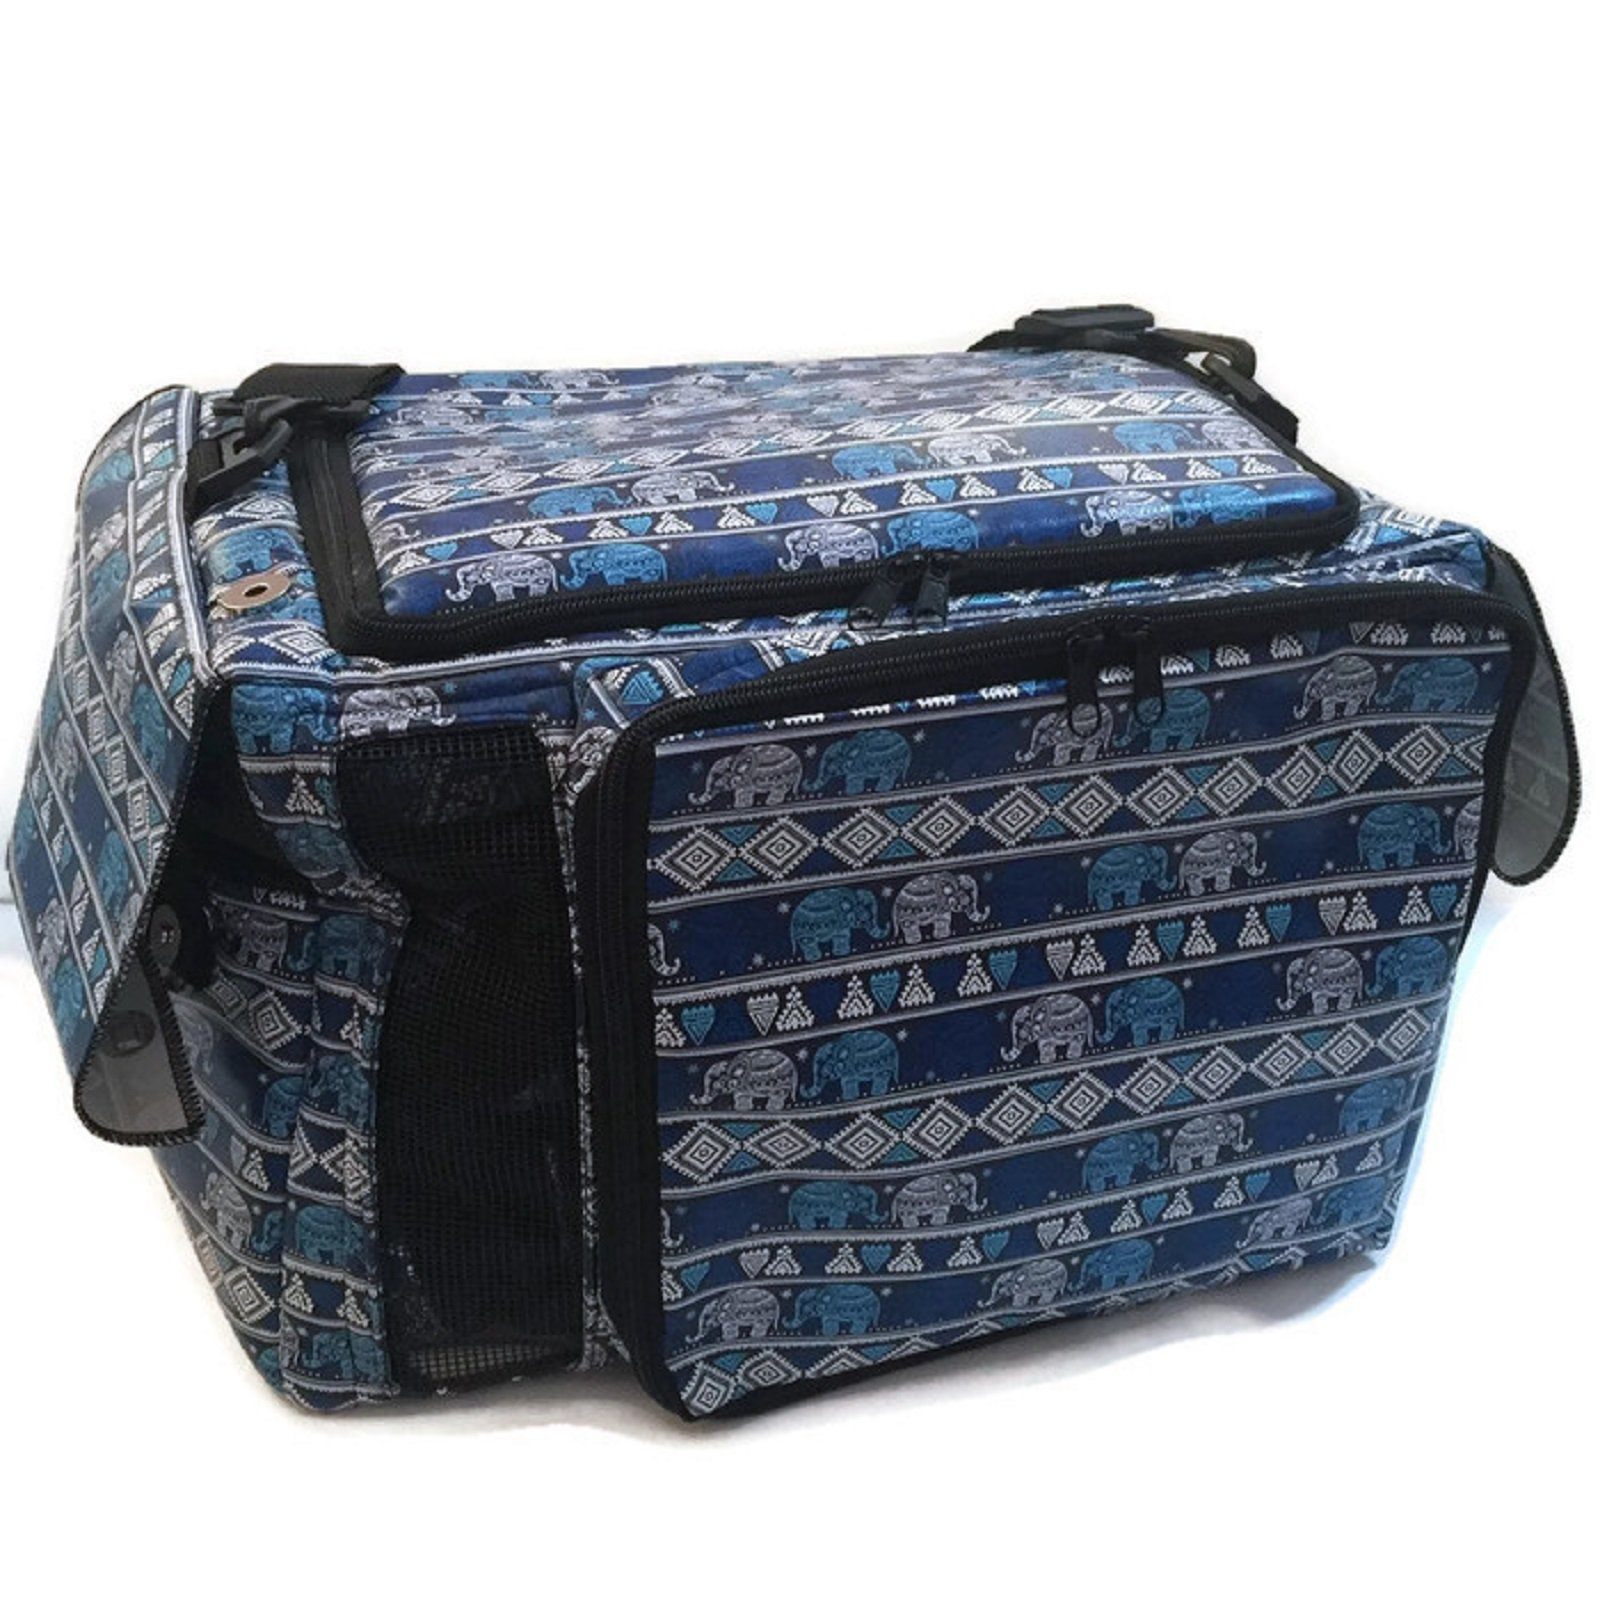 Large PU Leather Thailand Classic Blue Elephant Style Puppy Kitten Sugar Glider Birds Prairie dog Chinchillas Small Pet Travel Cage Shoulder Bag Kennel Carrier By Polar Bear's Republic by Polar Bear's Pet Shop